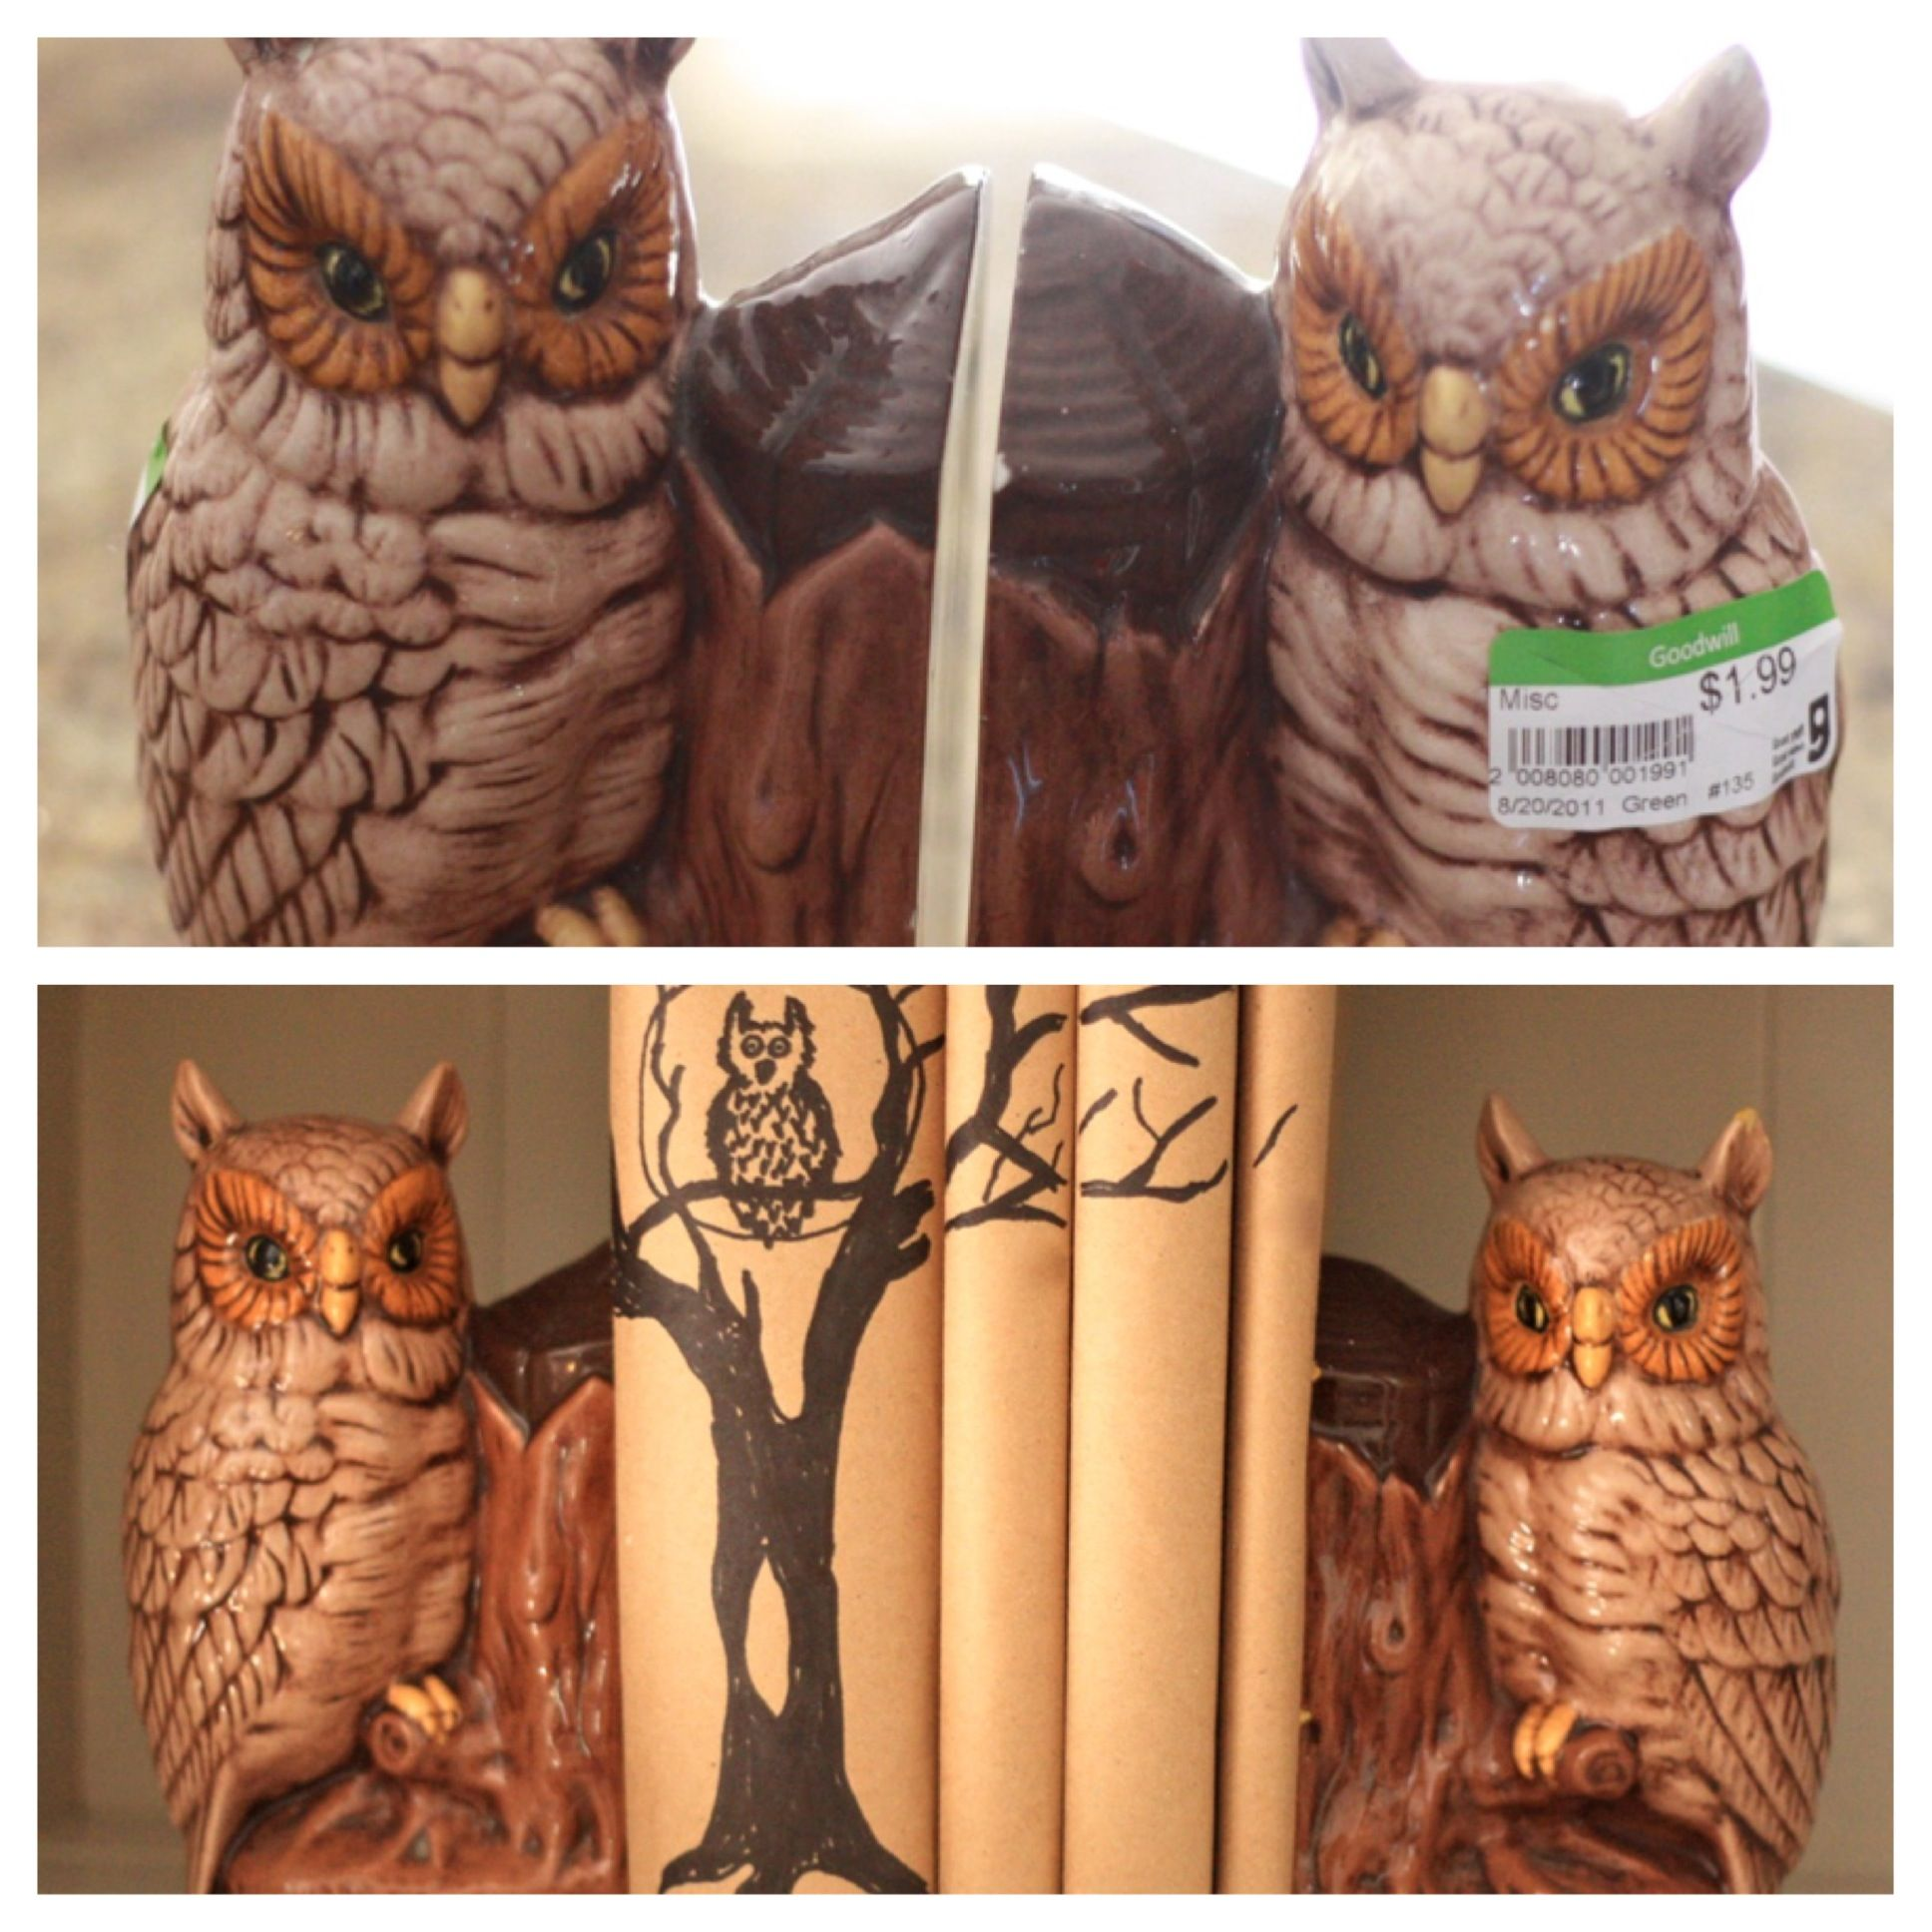 Owl Bookends from #Goodwill holding books wrapped in craft paper ...